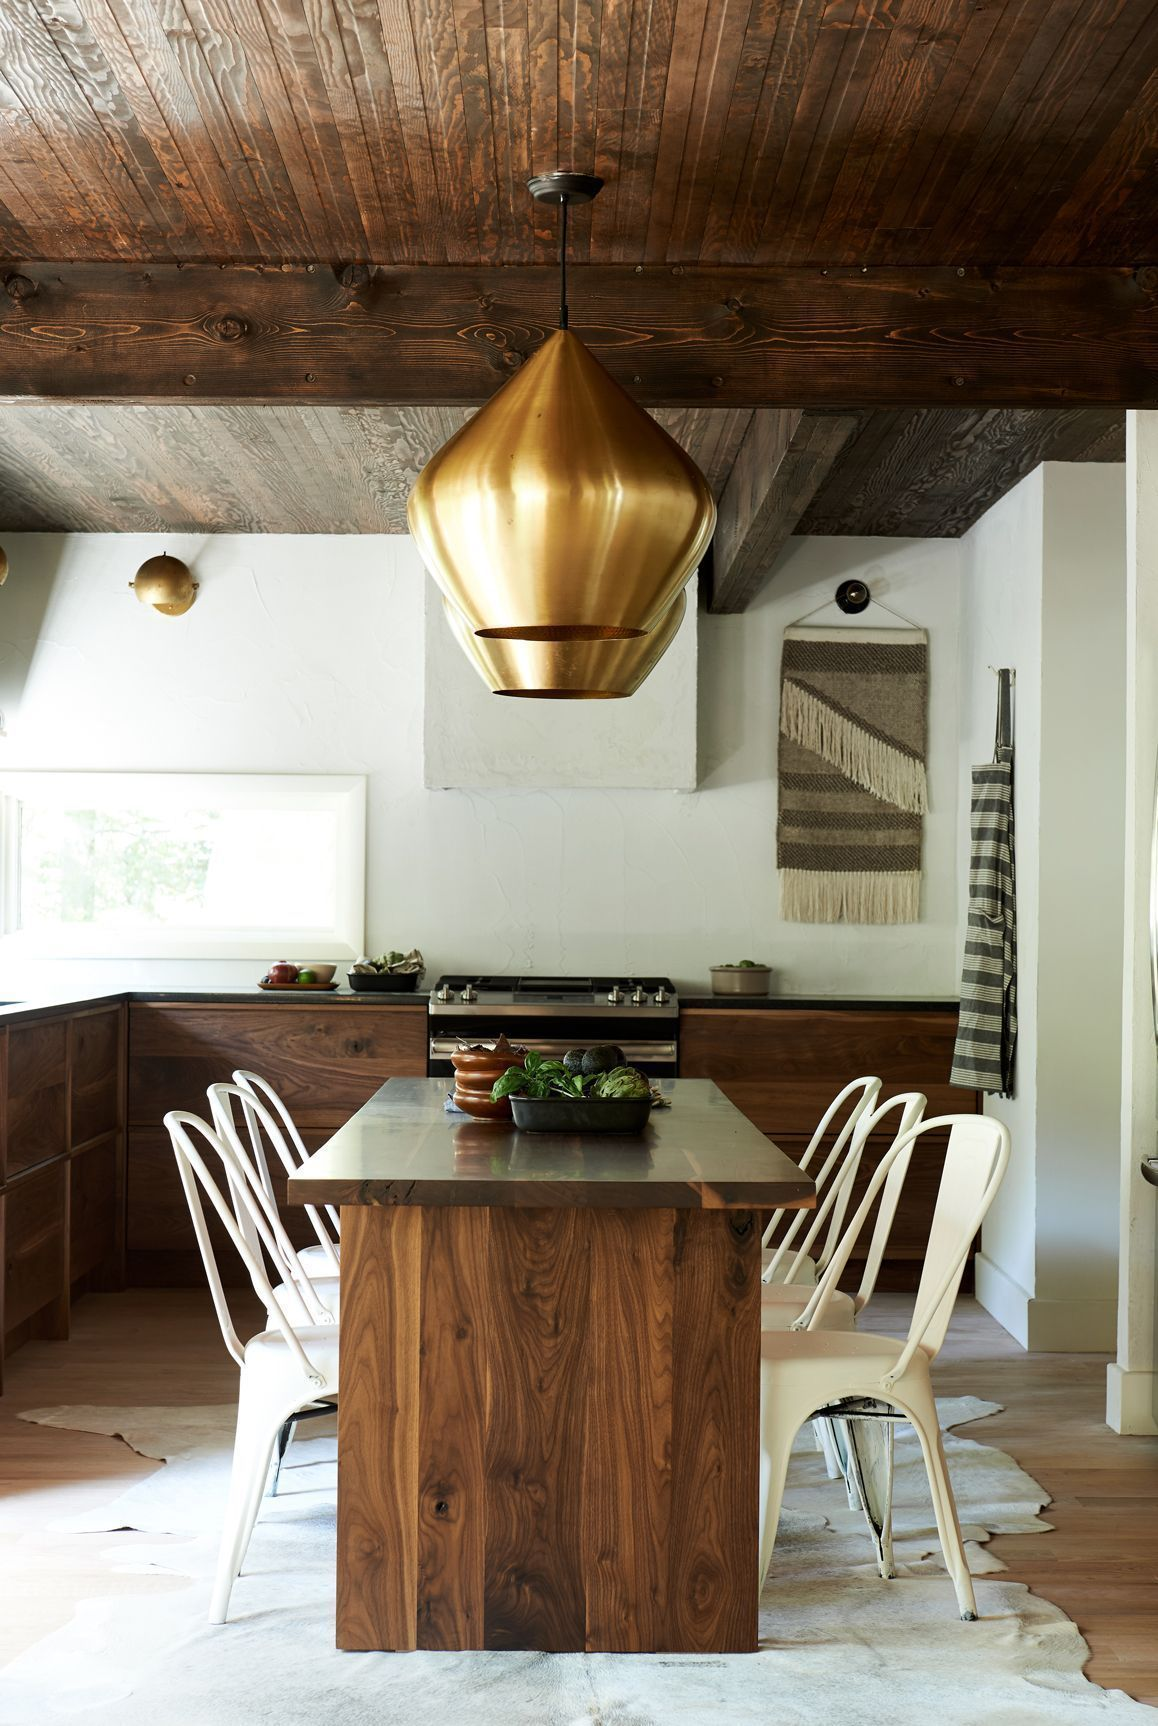 Leanne Ford Interiors For Hgtv S Restored By The Fords The Wilmot Project Construction By Steve Ford Shot By Alexandra Ribar Featured On Elle In 2020 Interieur